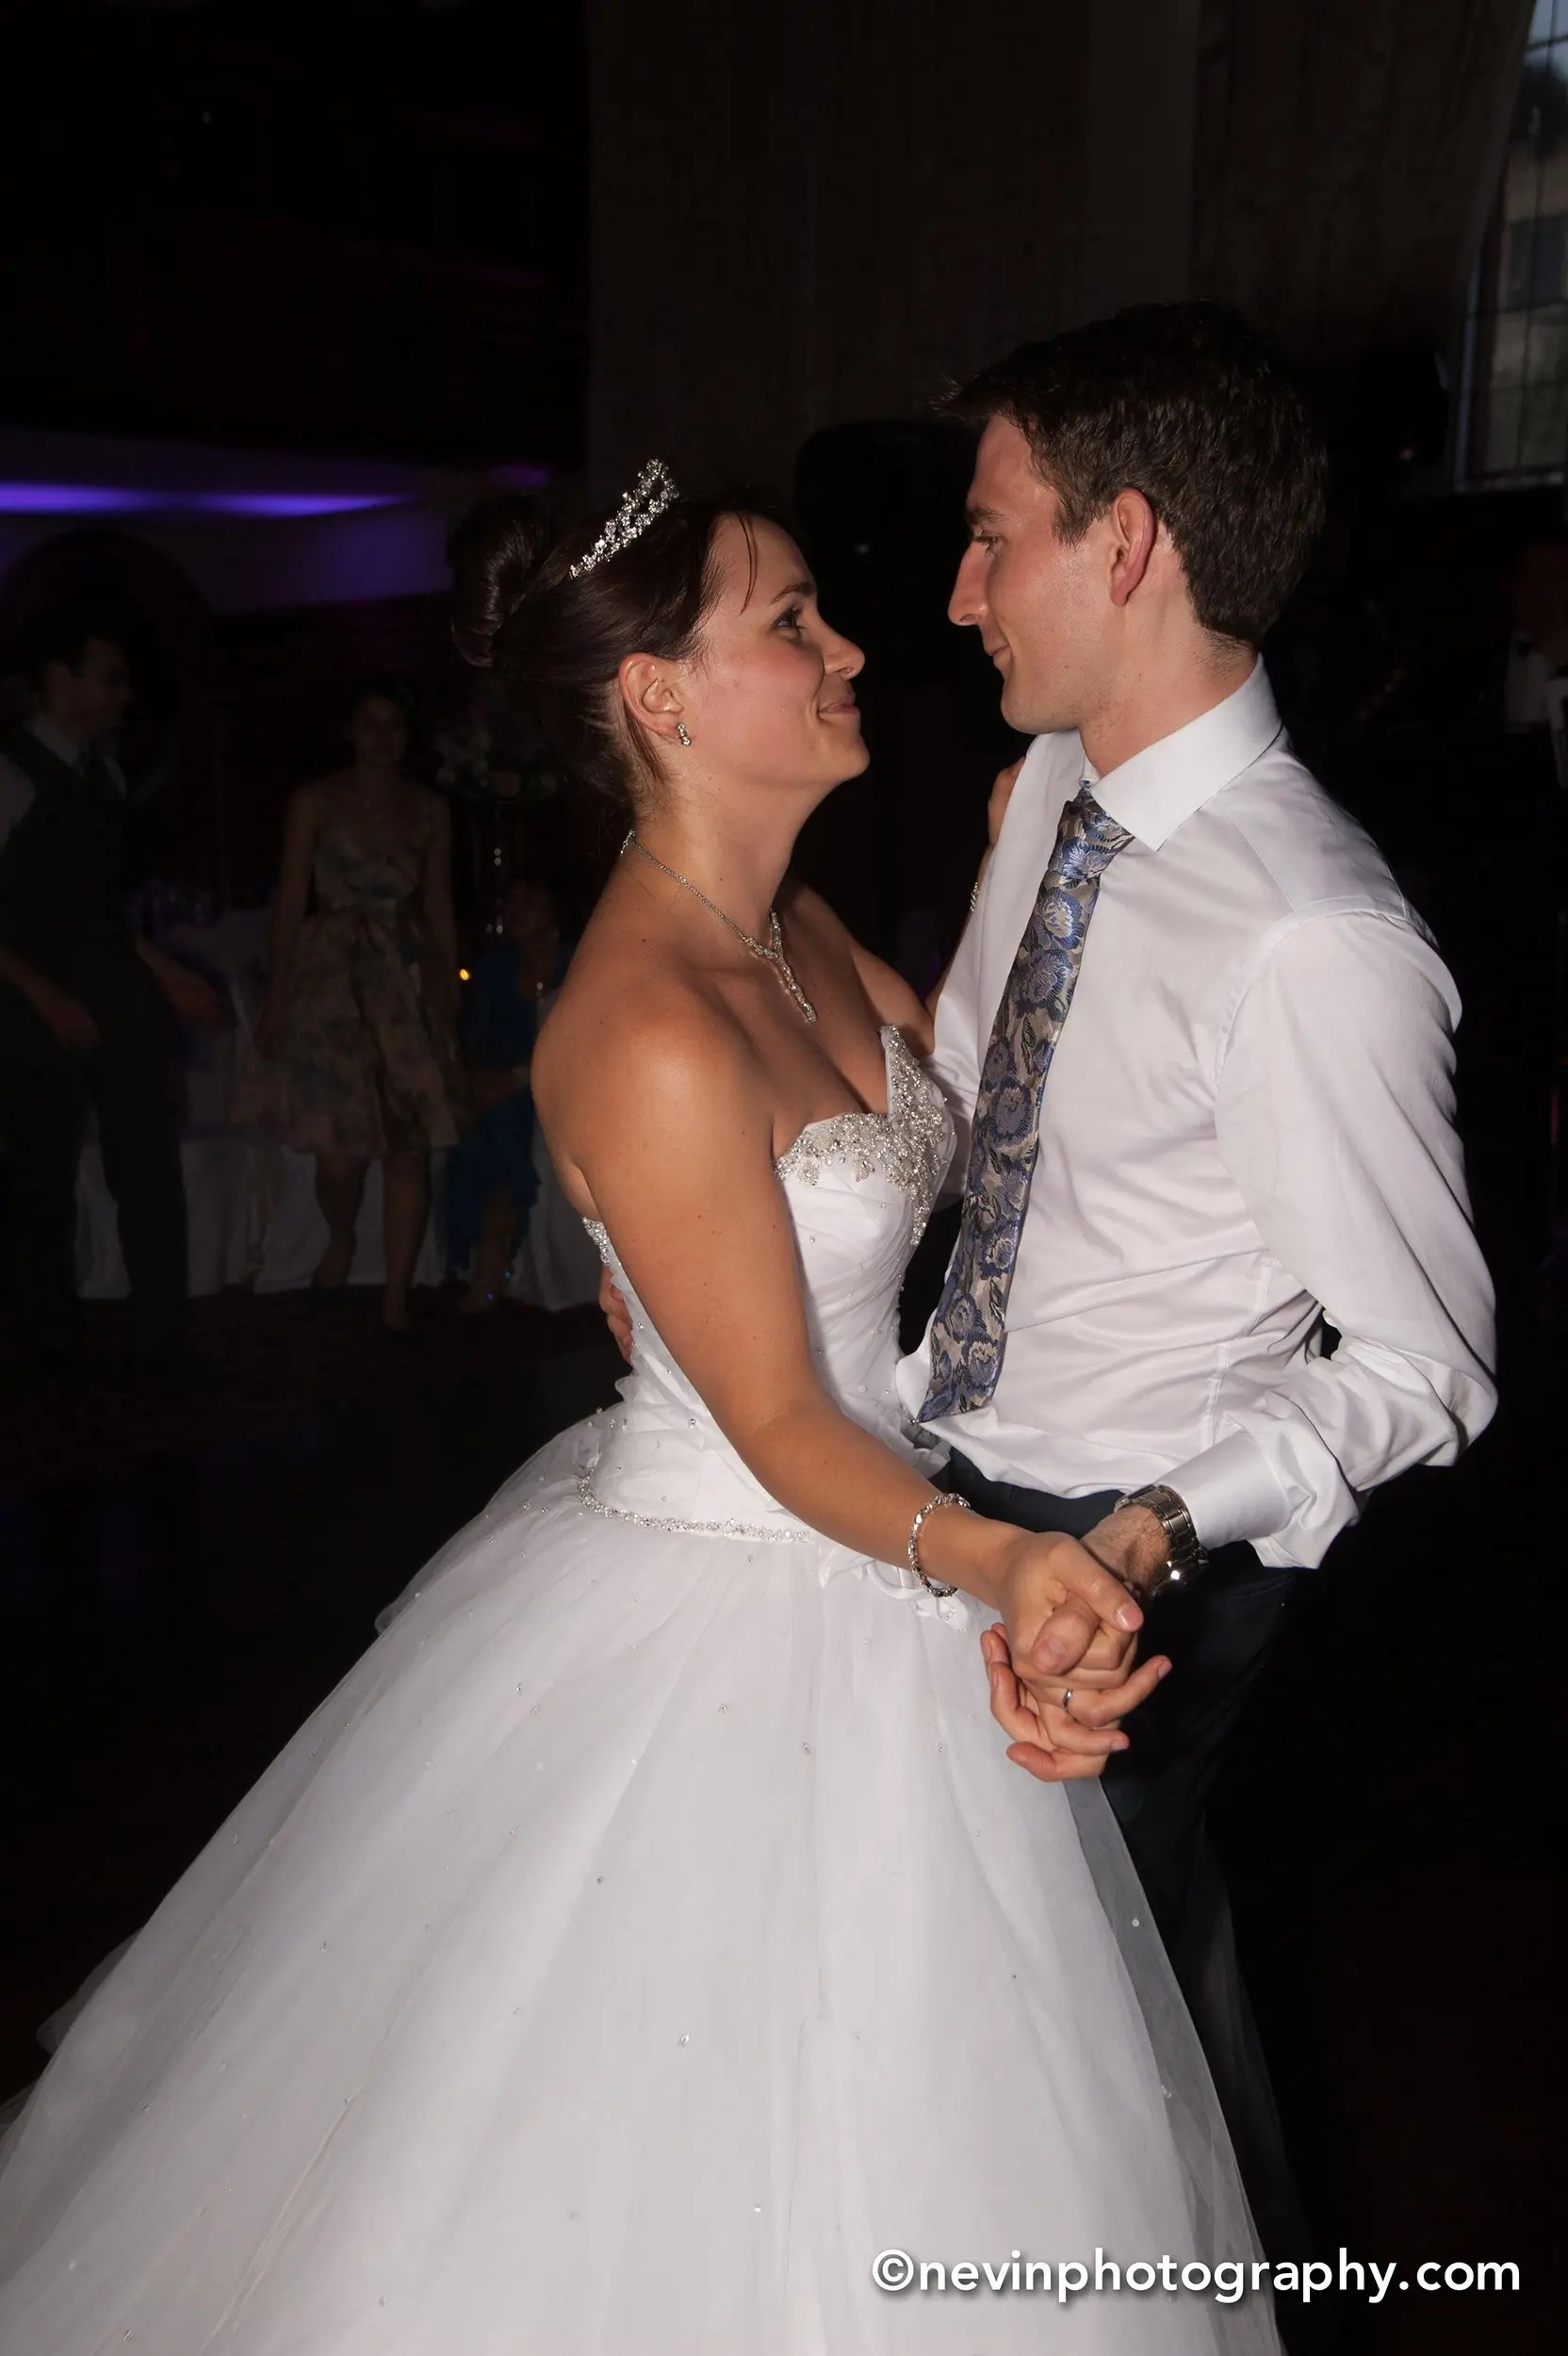 Couples first dance as husband and wife